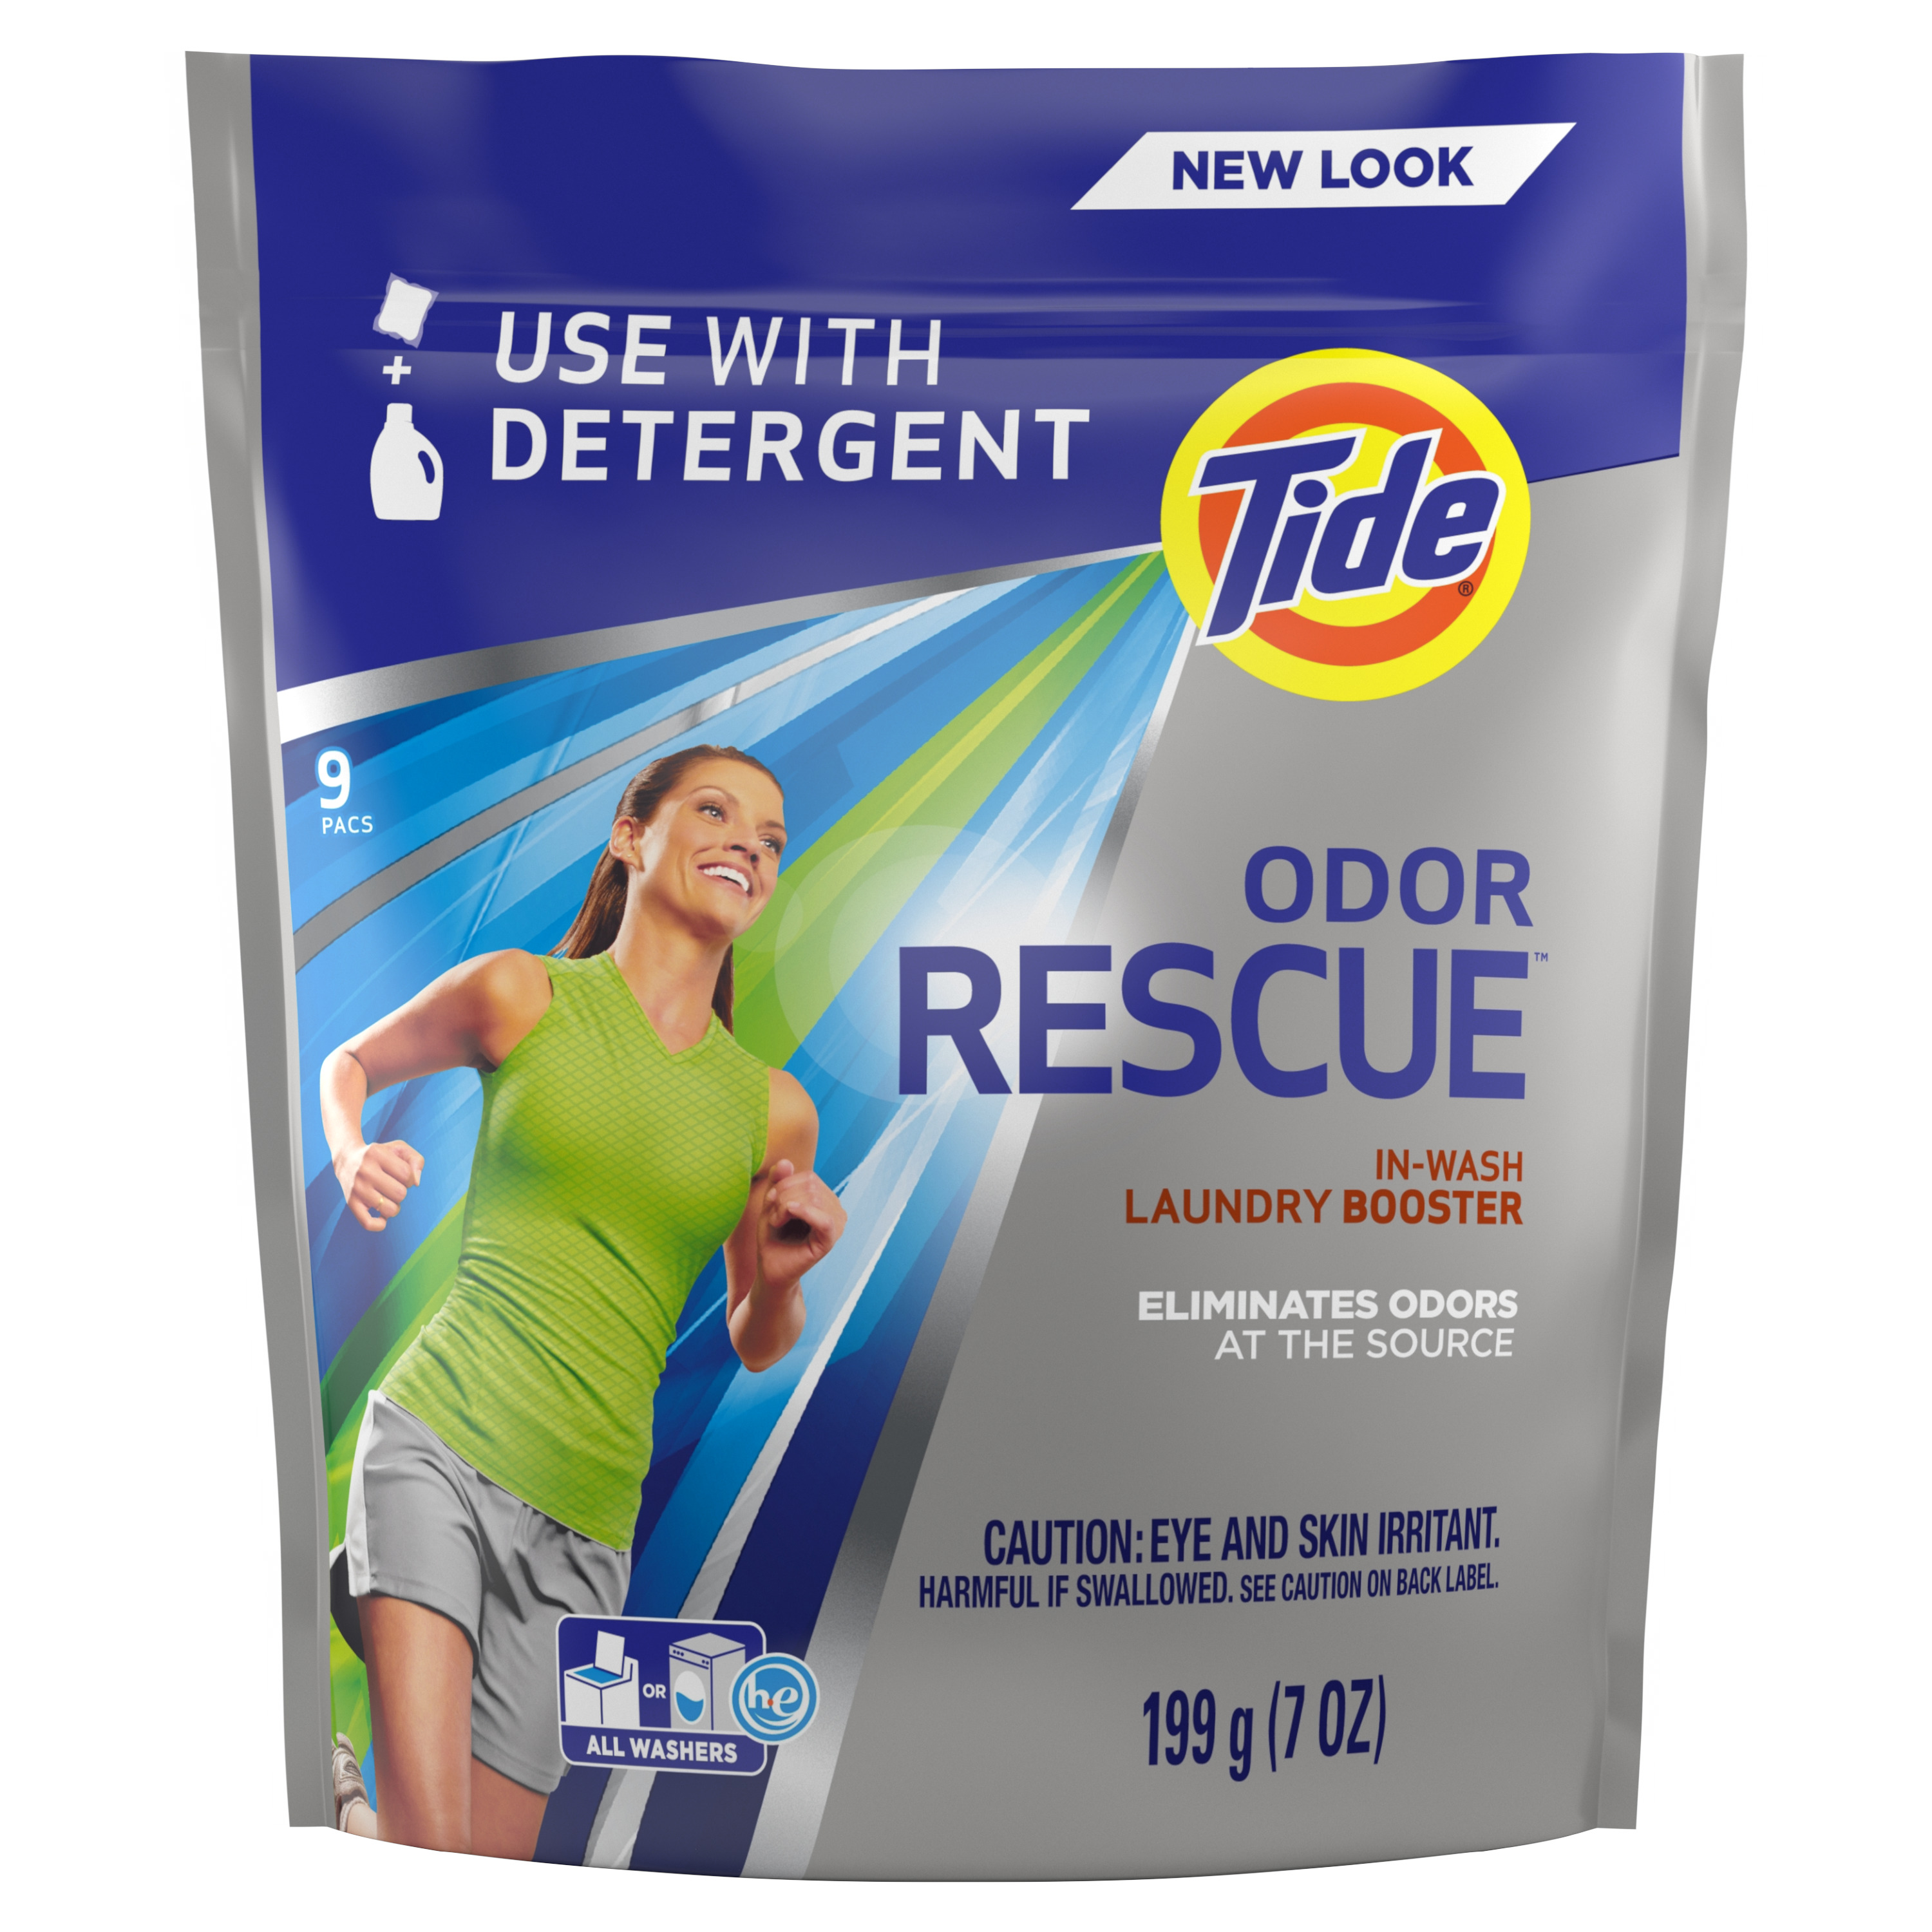 Tide Odor Rescue In-Wash Laundry Booster, 9 pacs